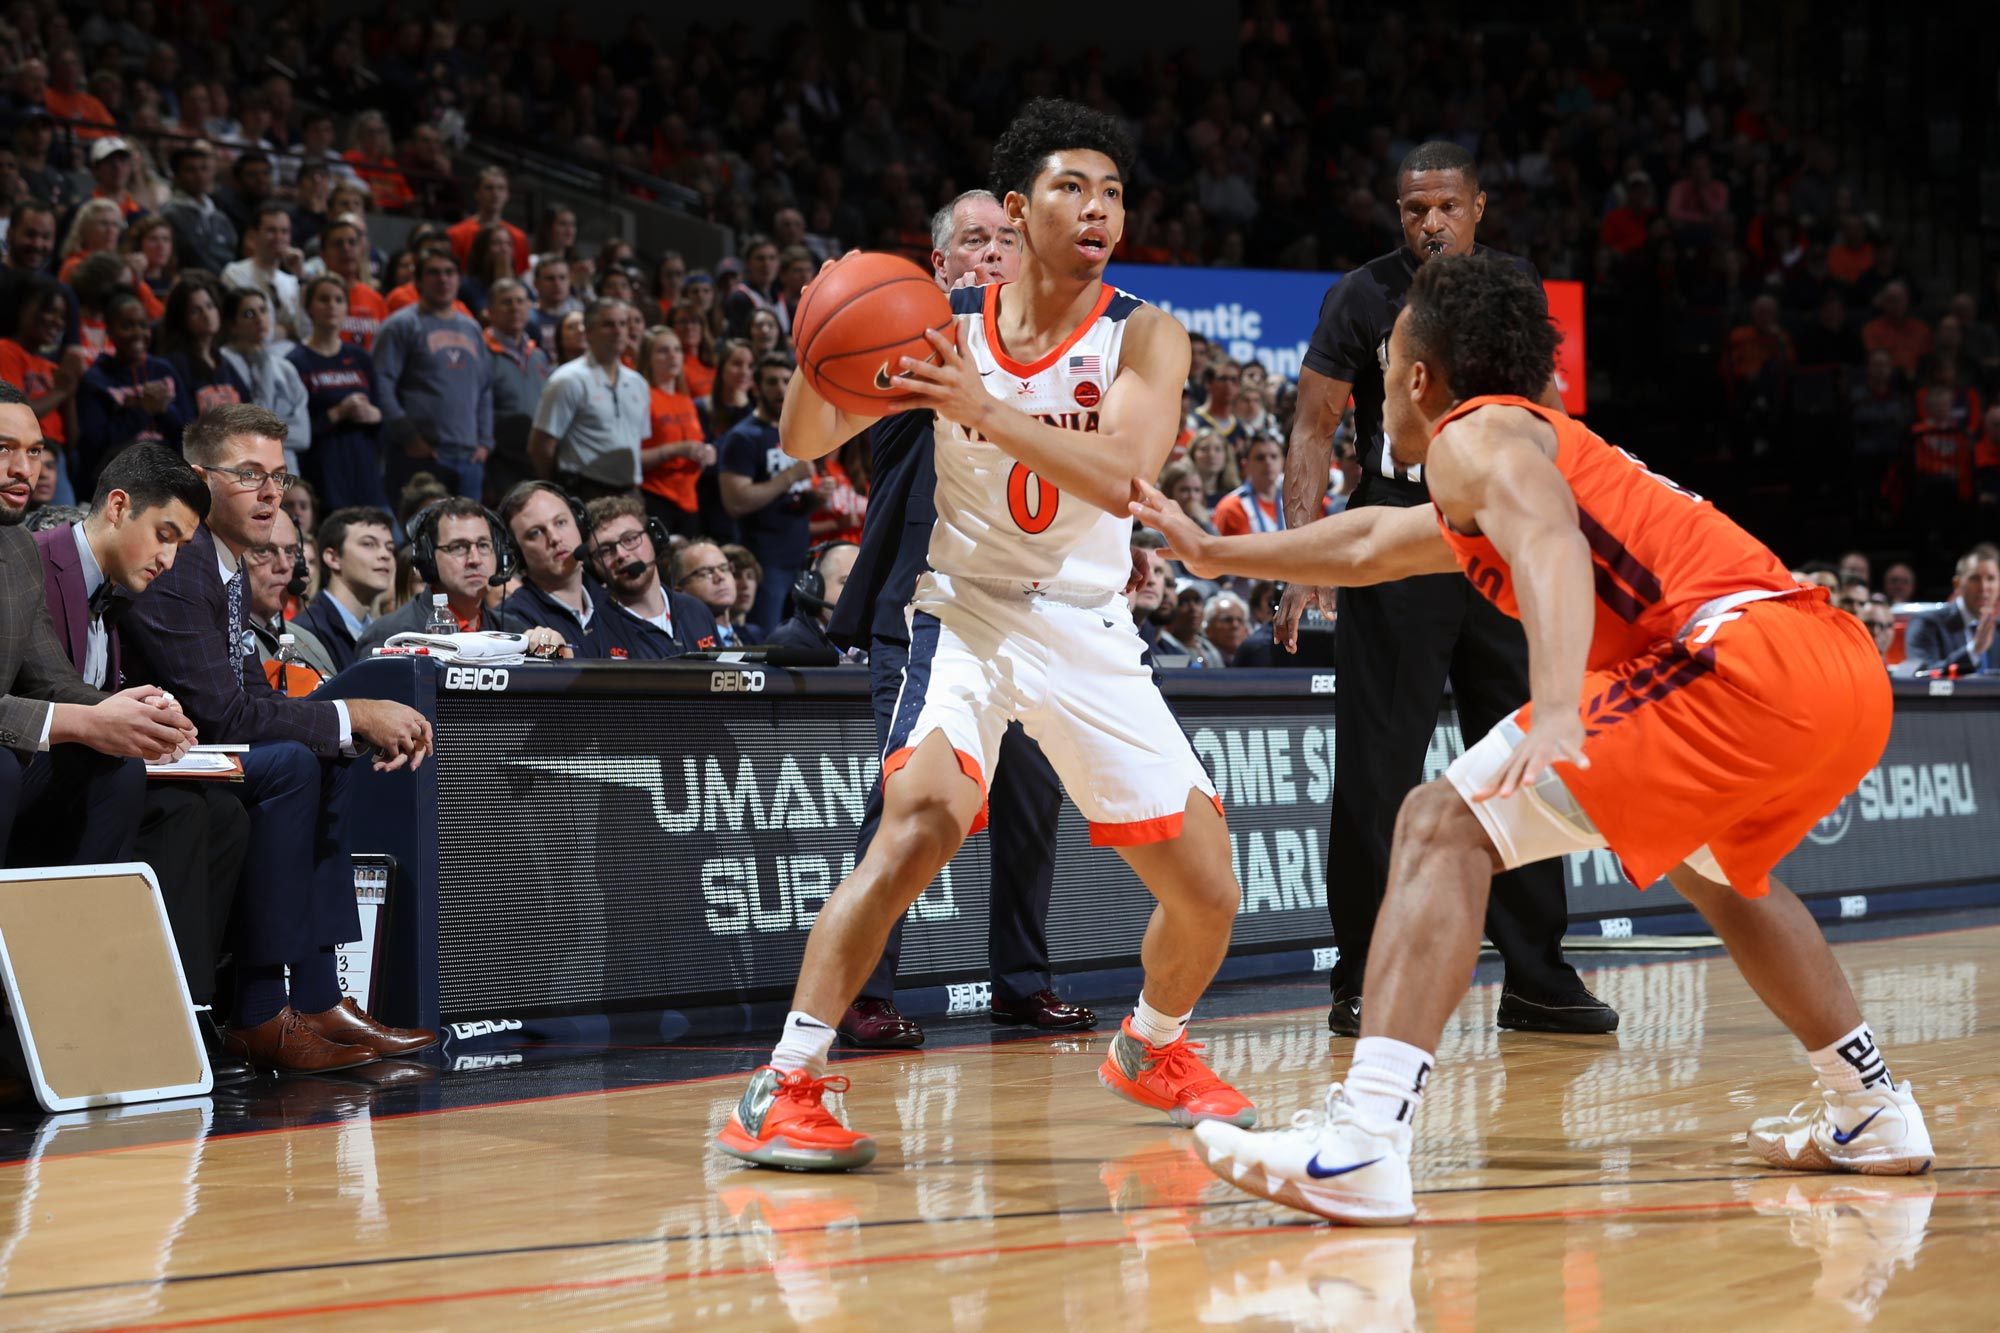 Clark, who leads UVA in assists, has also showed his selfless side off the court.